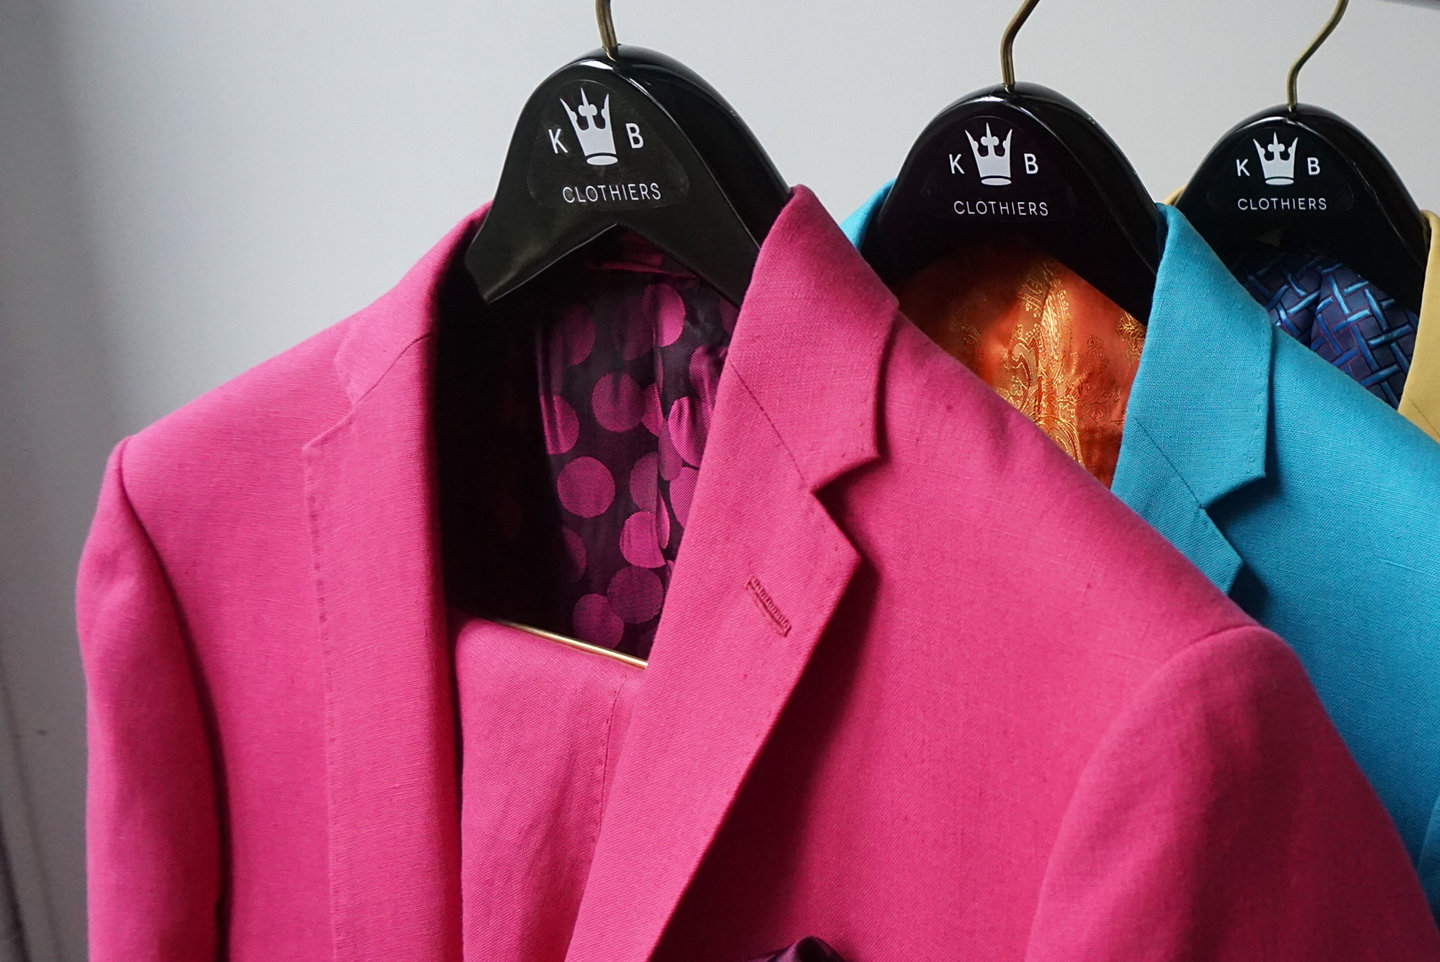 King brothers clothiers bespoke custom suits minneapolis for Custom tailored shirts chicago